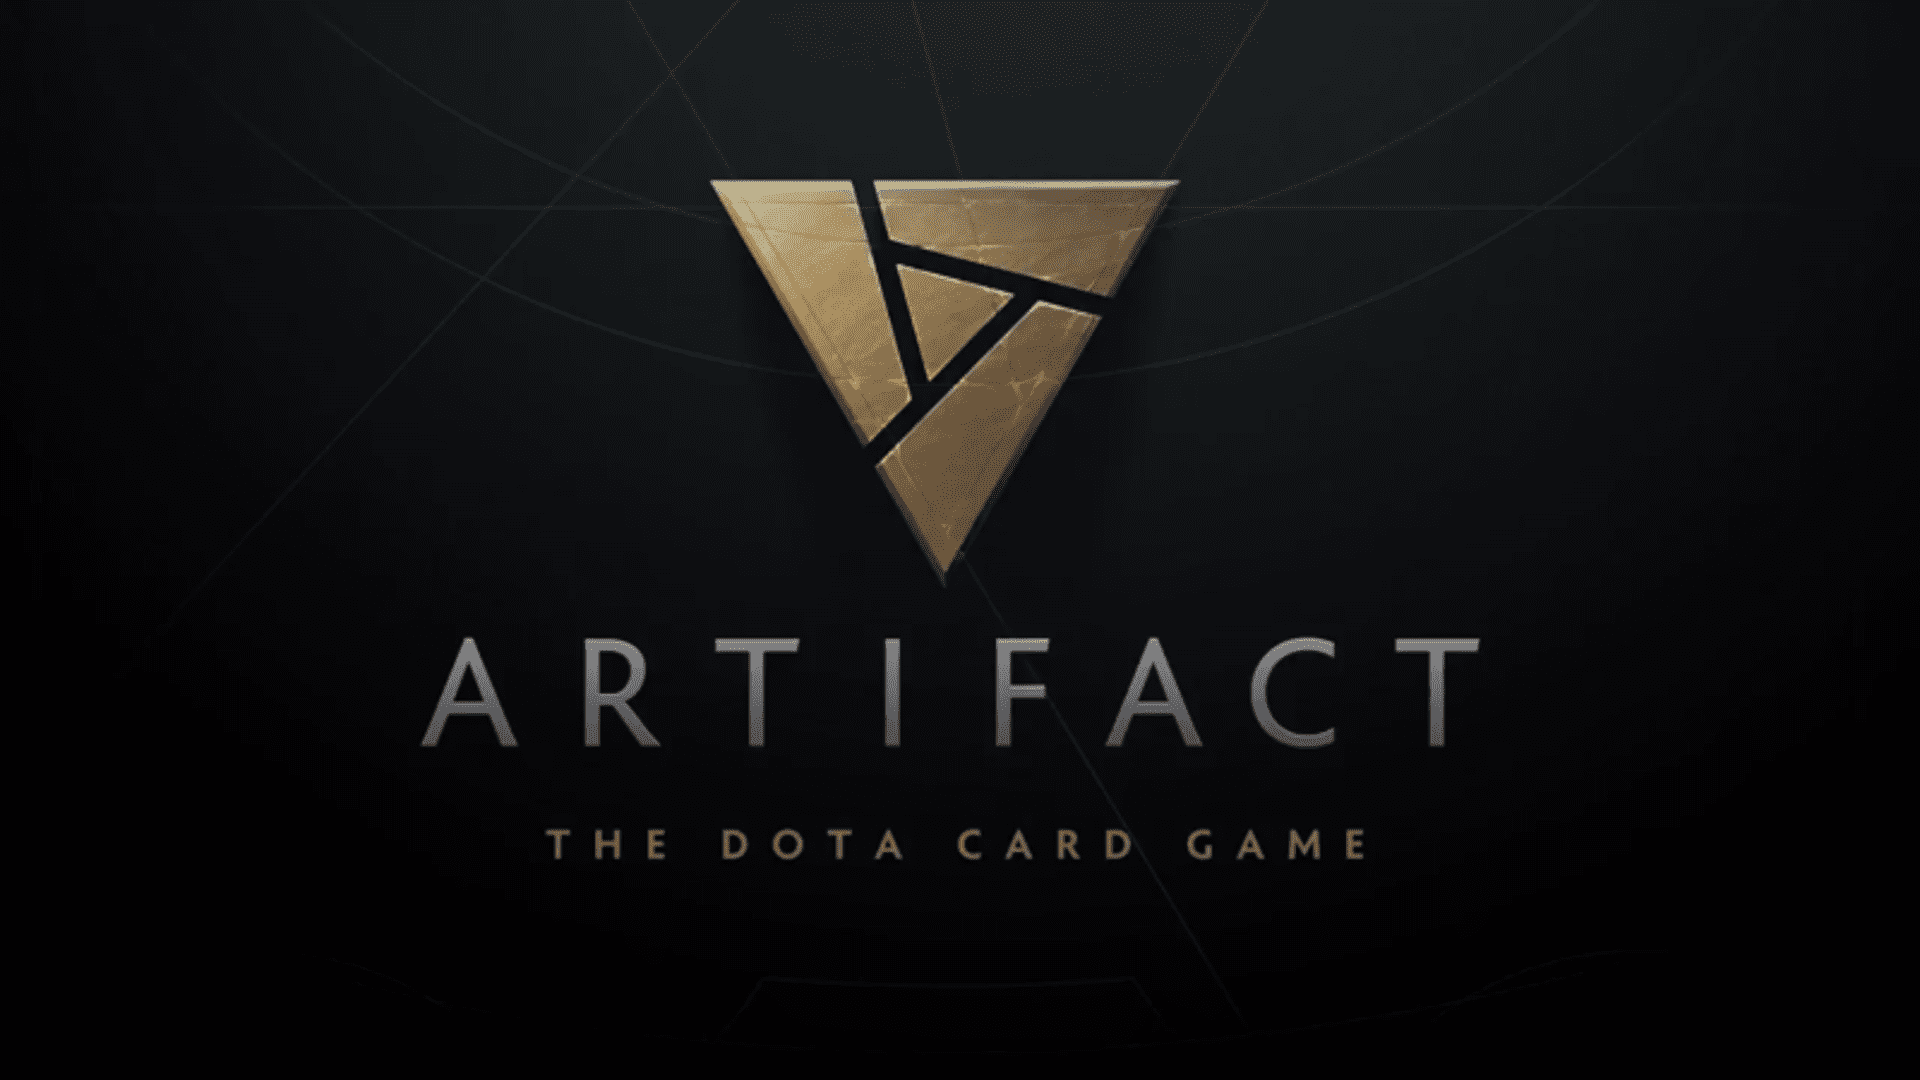 Why Not to Hate Valve for Artifact